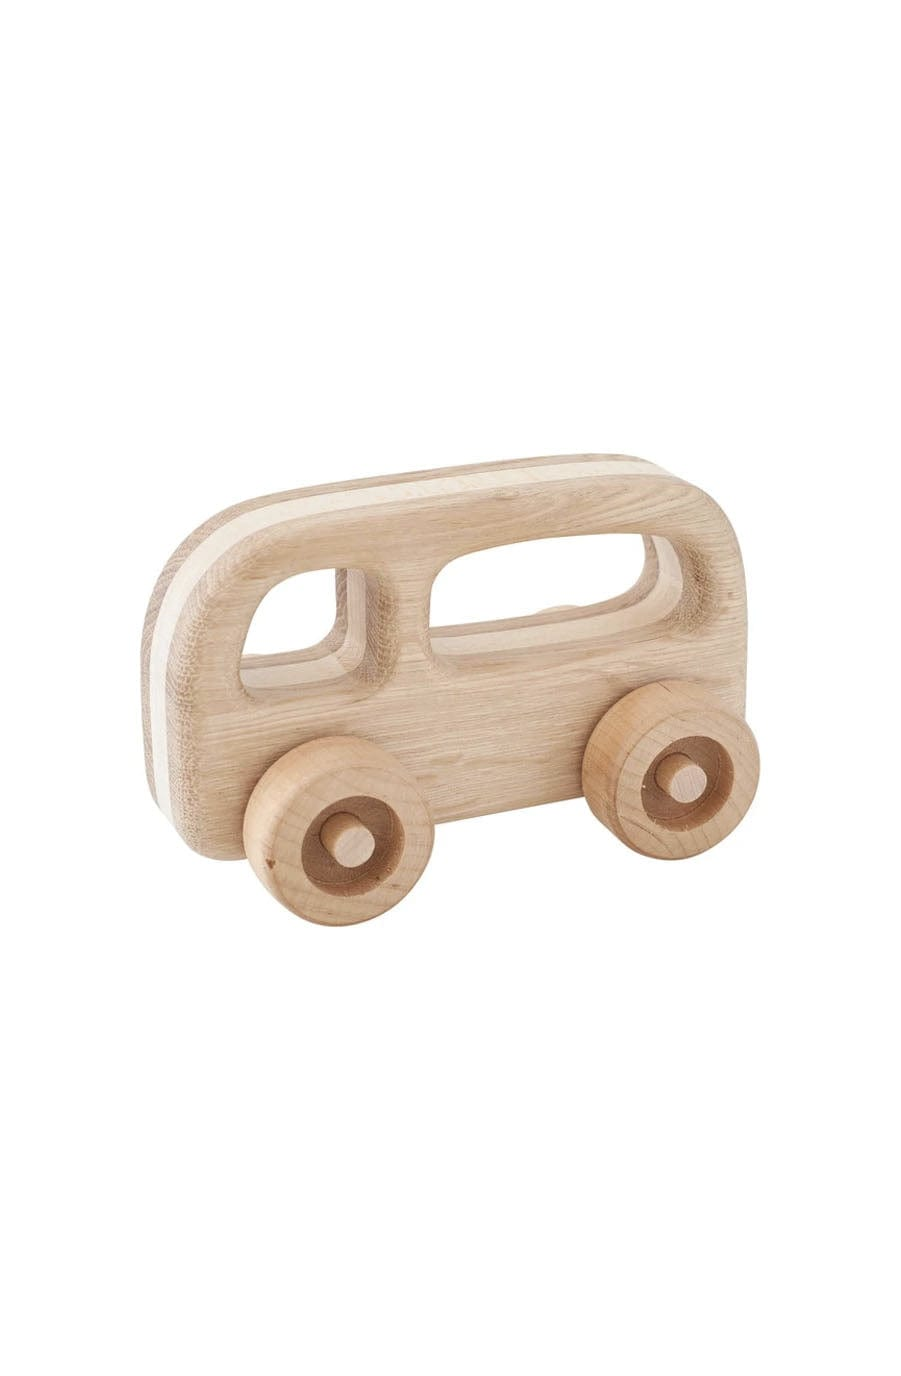 Kubi Dubi Wooden Bus, Fred - Hello Little Birdie